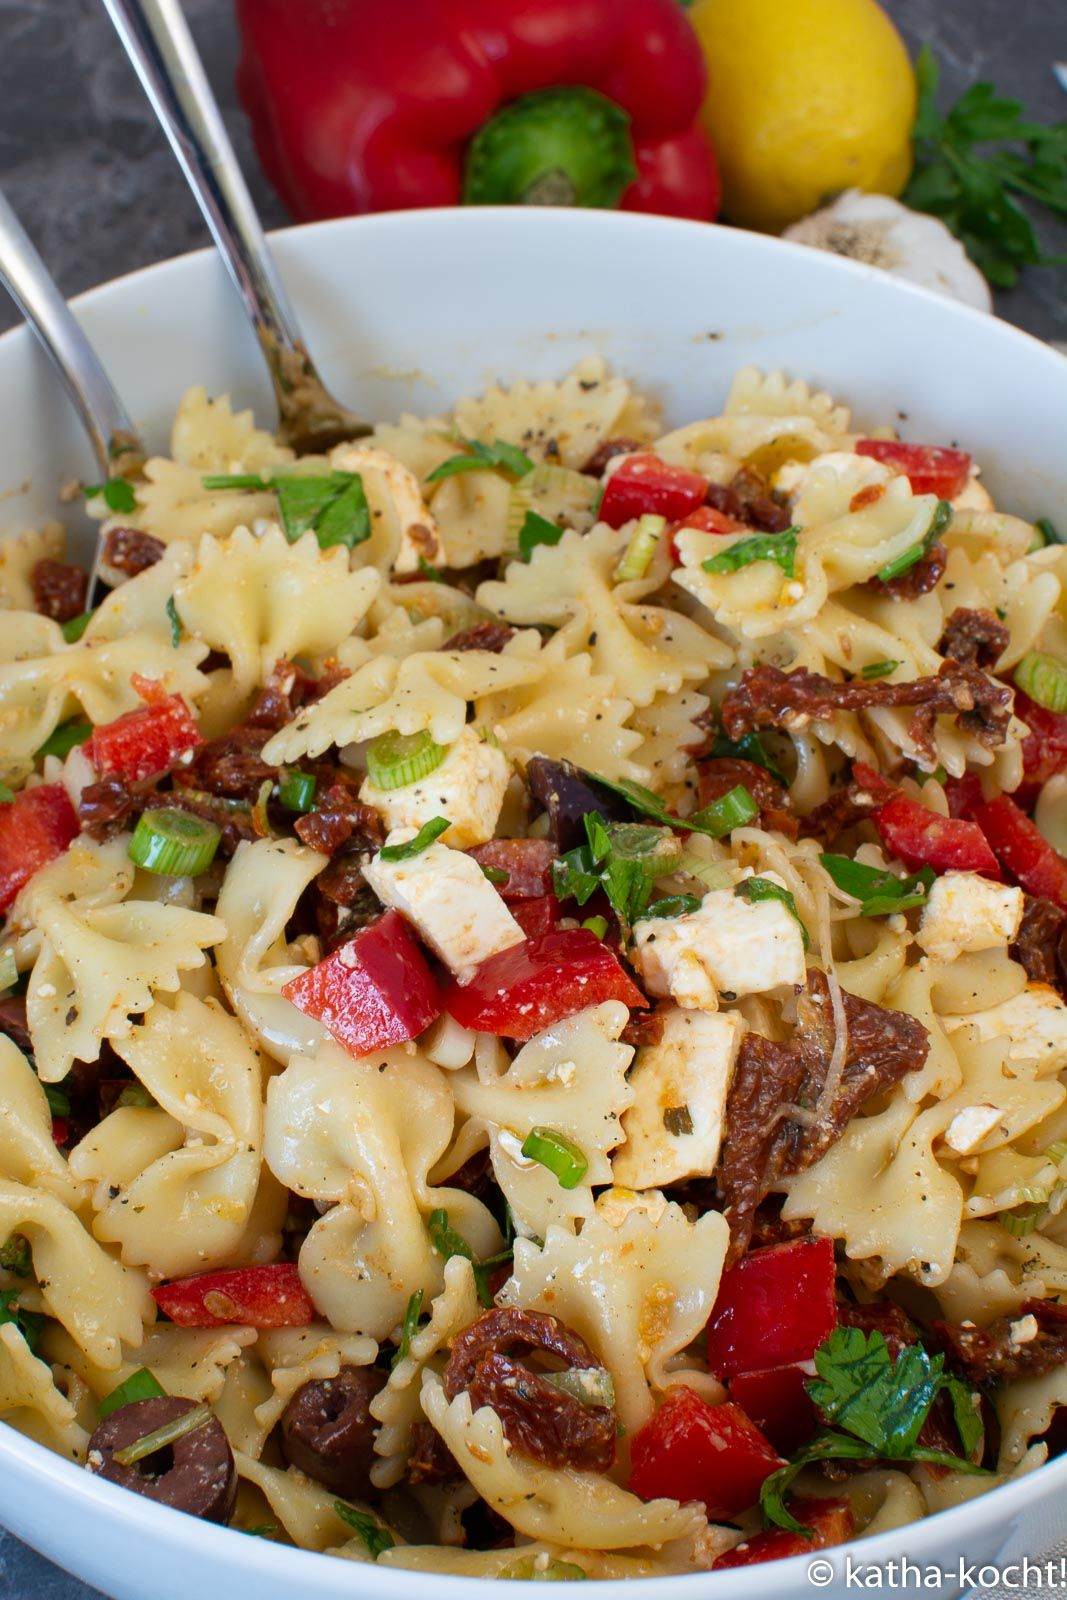 Photo of Mediterranean pasta salad with olives, sun-dried tomatoes and peppers – Katha-cooks!